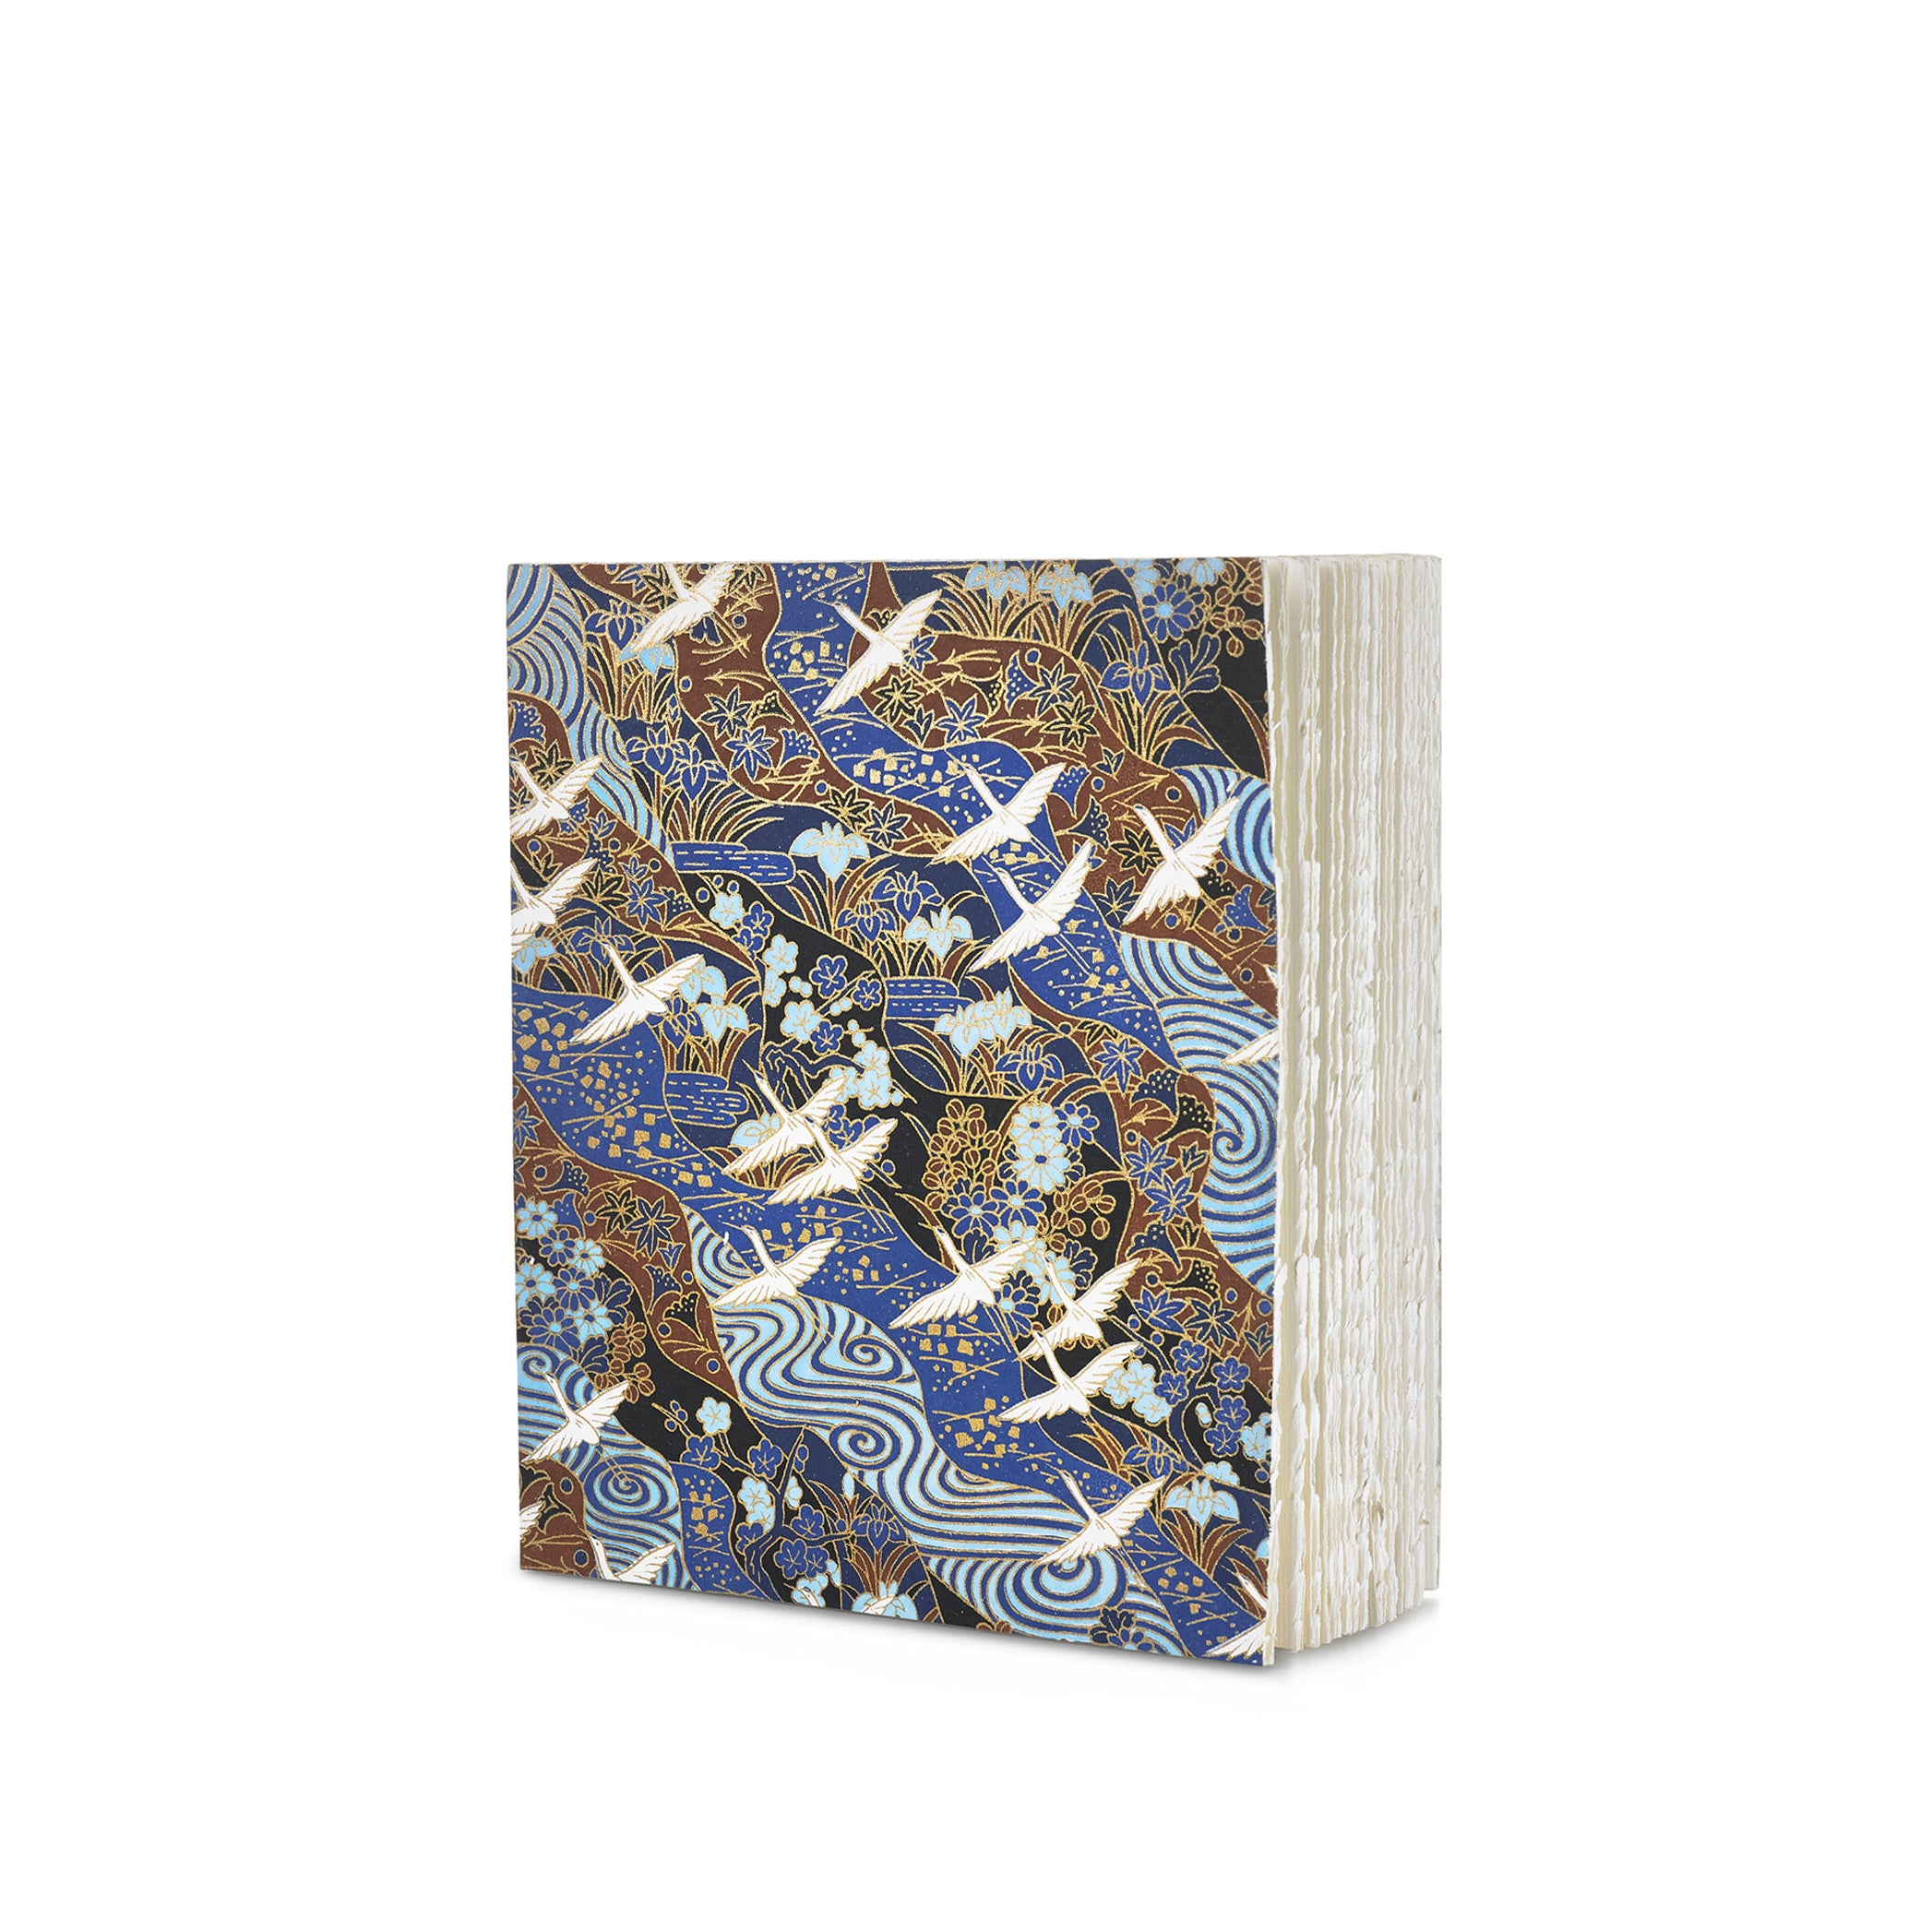 Handprinted Japanese Chiyogami Covered Sketchbook, Birds on Black, Blue and Brown